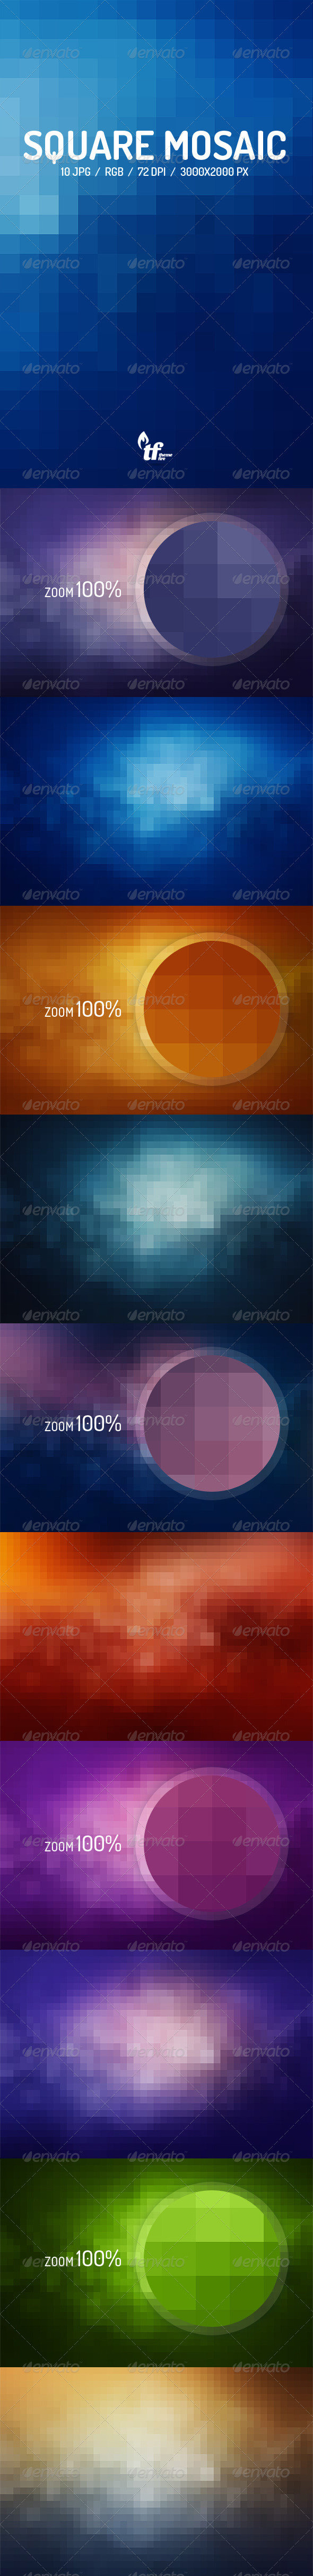 GraphicRiver Square Mosaic Backgrounds 8771417